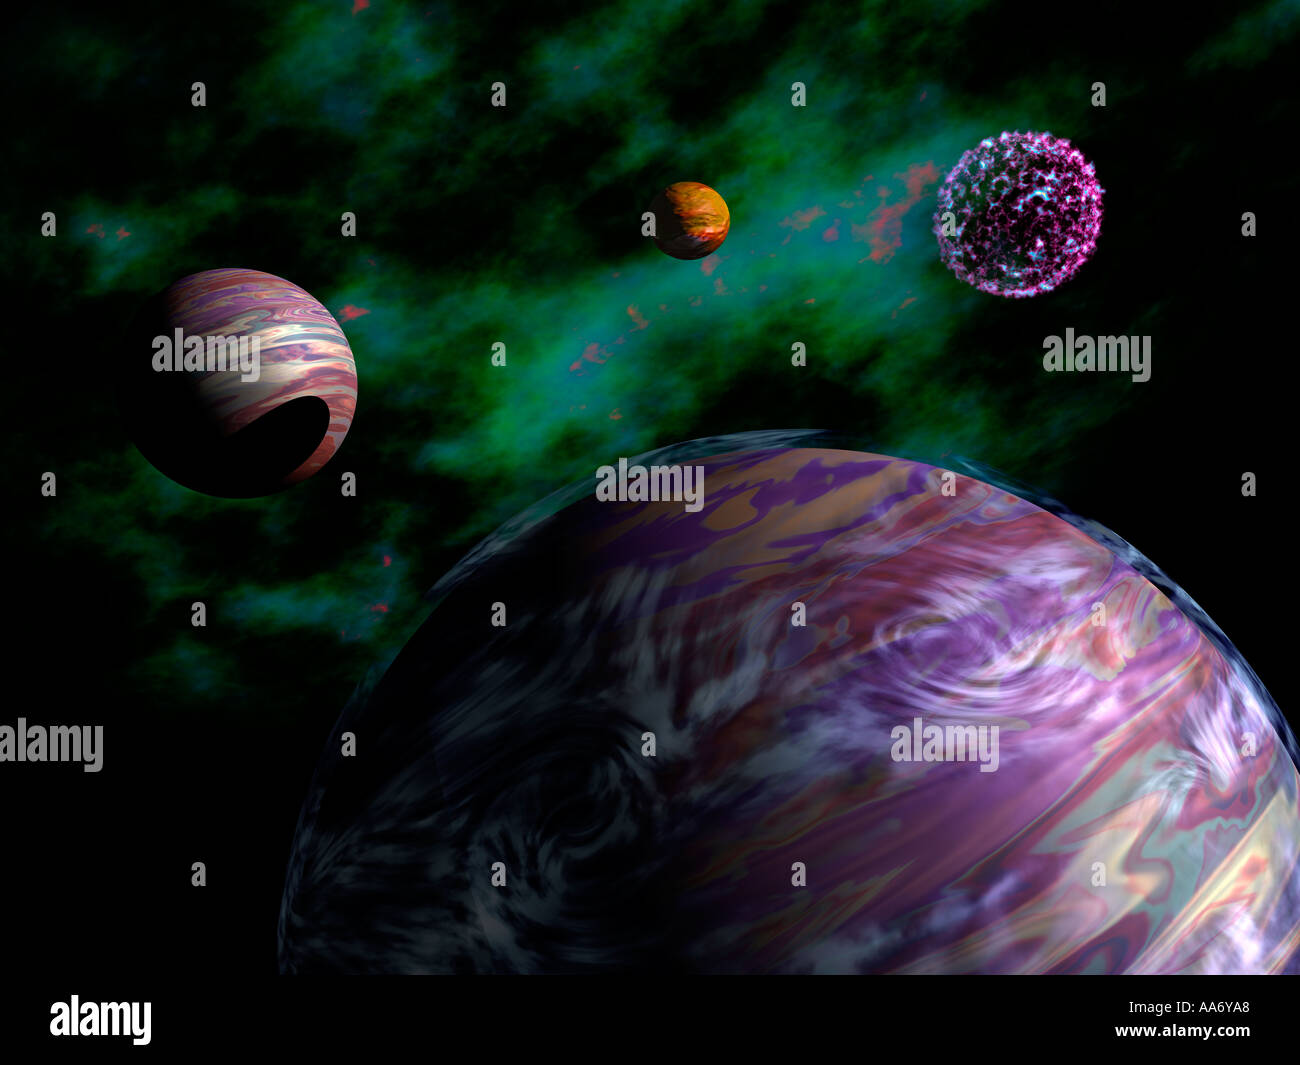 Alien Planets, Conceptual Illustration - Stock Image